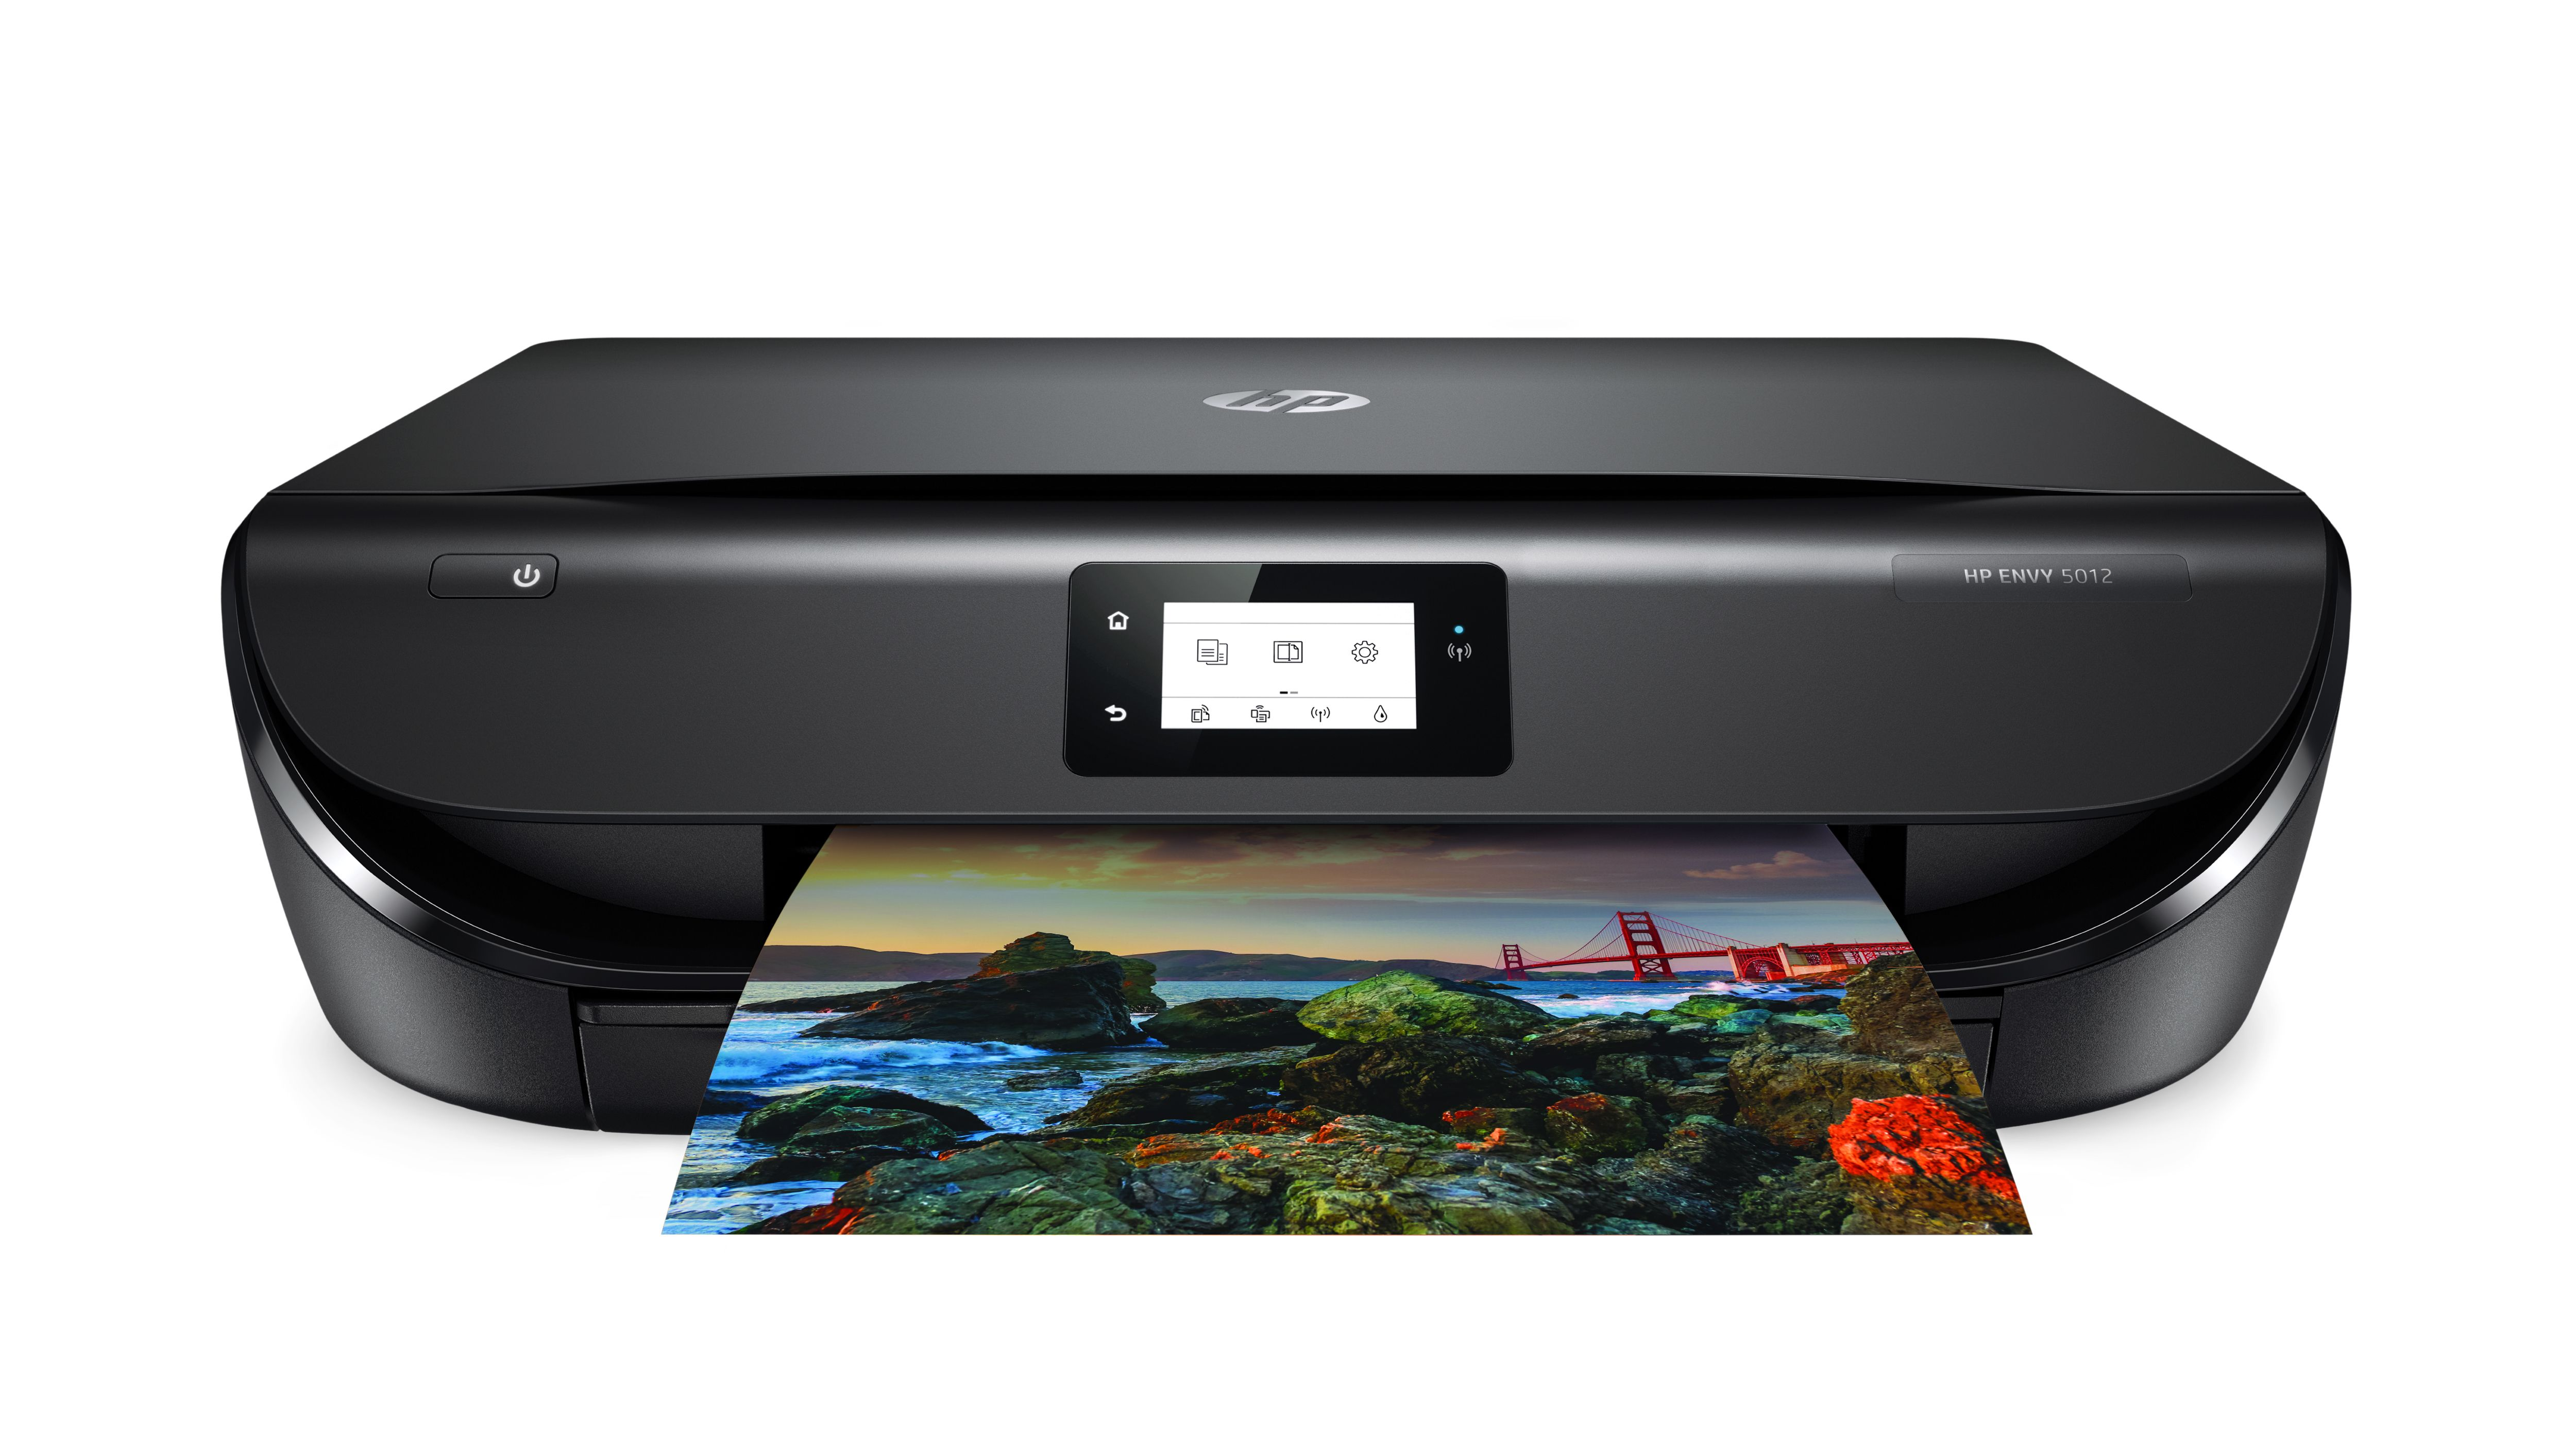 HP Envy 5012 Color Inkjet 4-in-1 Printer